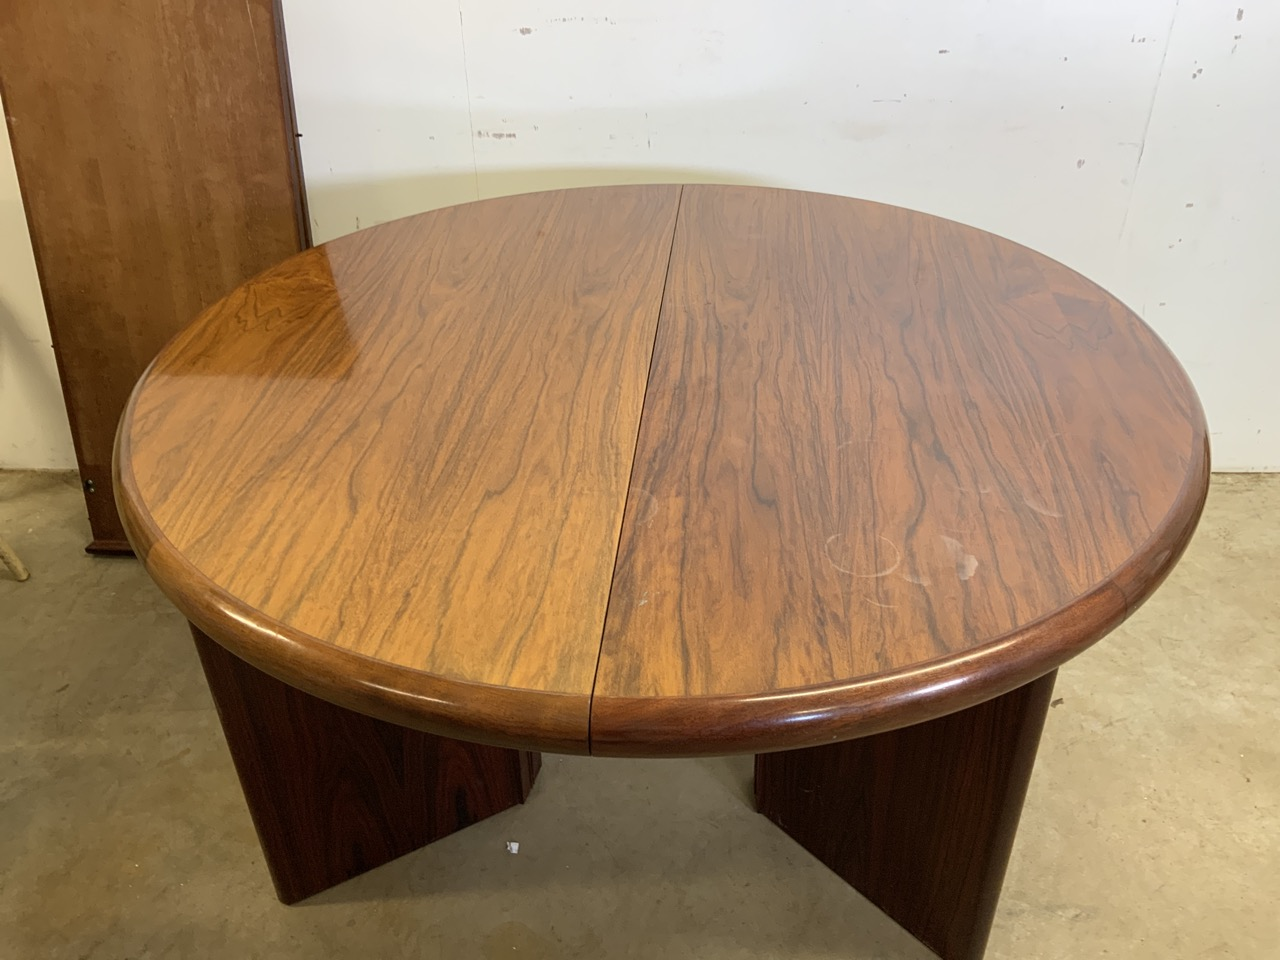 A mid century rosewood Scandinavian extendable table by Svegards Markaryd W:170cm x D:120cm x H:73cm - Image 8 of 8